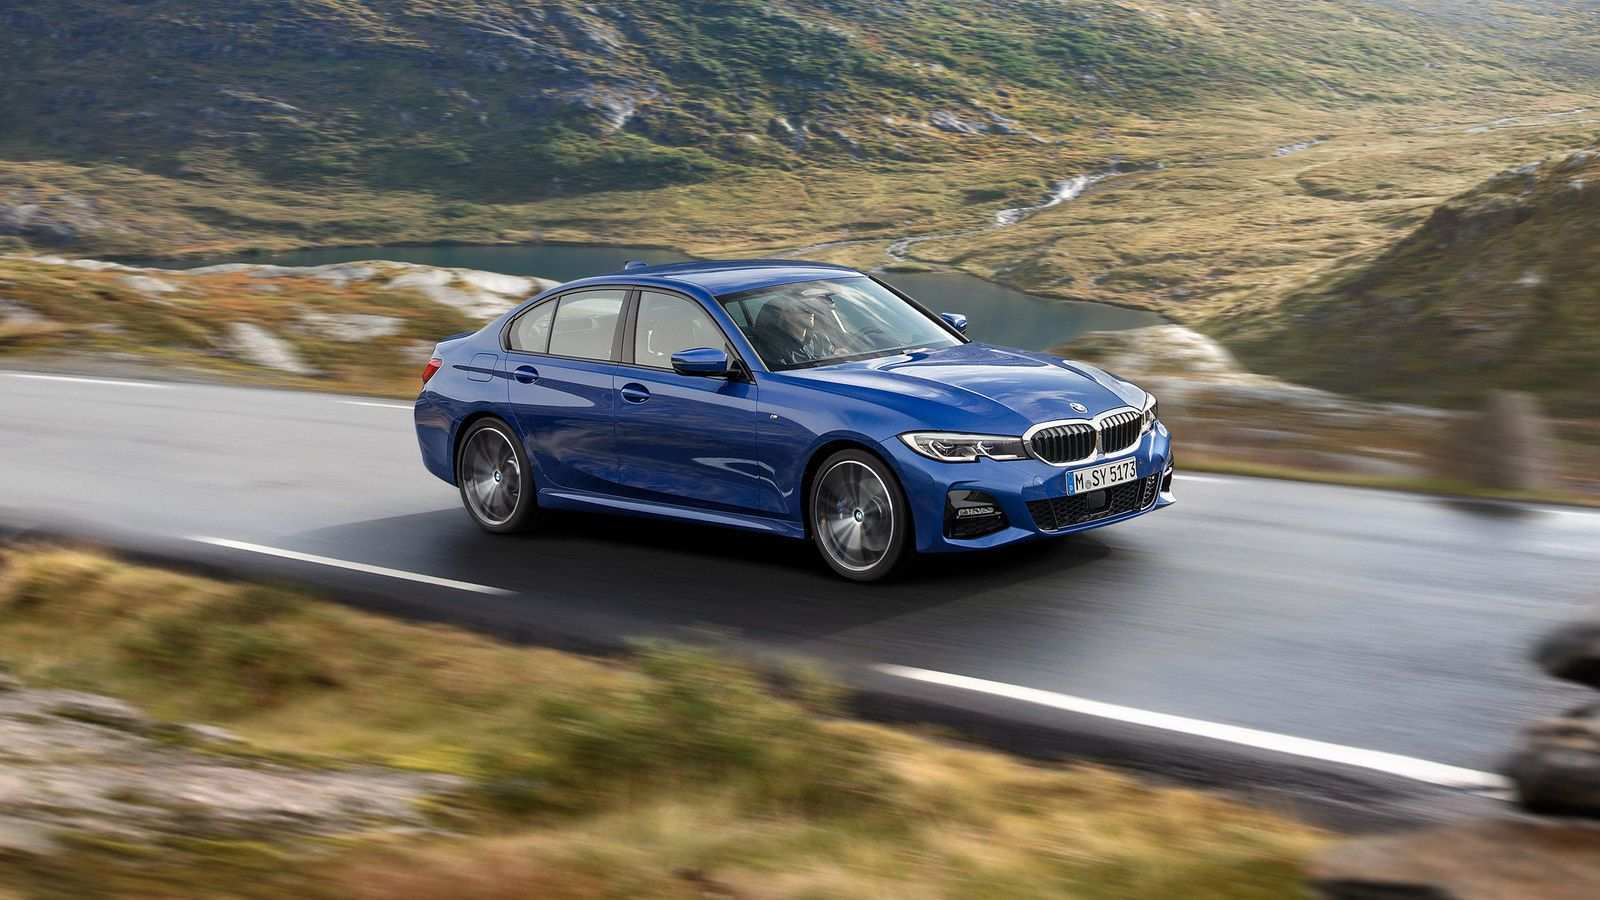 71 Best Review 2020 Bmw G20 Performance with 2020 Bmw G20